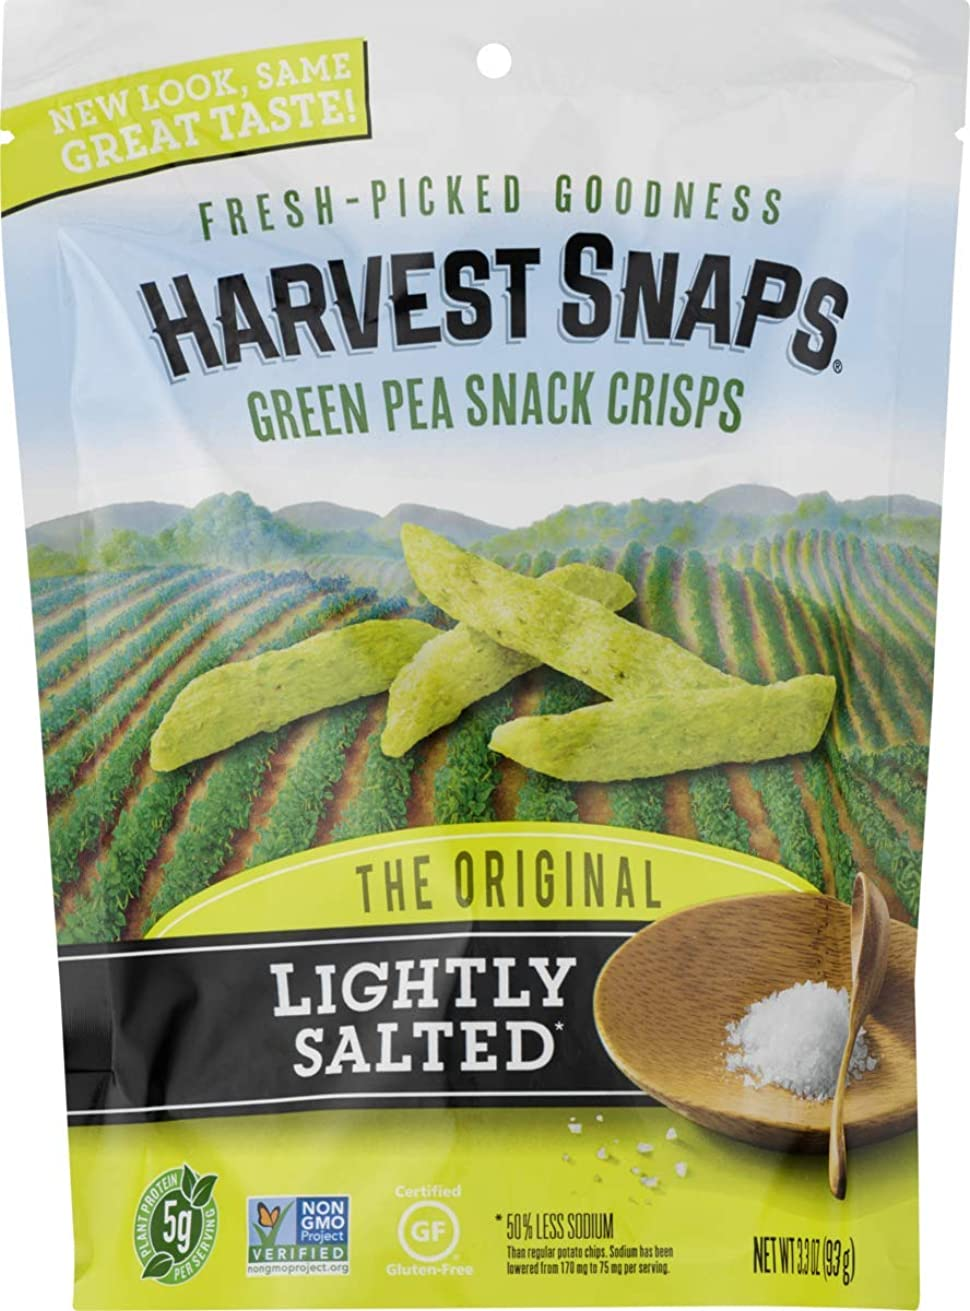 Harvest Snaps Green Pea Snack Crisps, Lightly Salted, 3oz/3Count, Gluten-Free, Baked & Crunchy Vegetarian Snack With Plant Protein & Fiber, 3Count